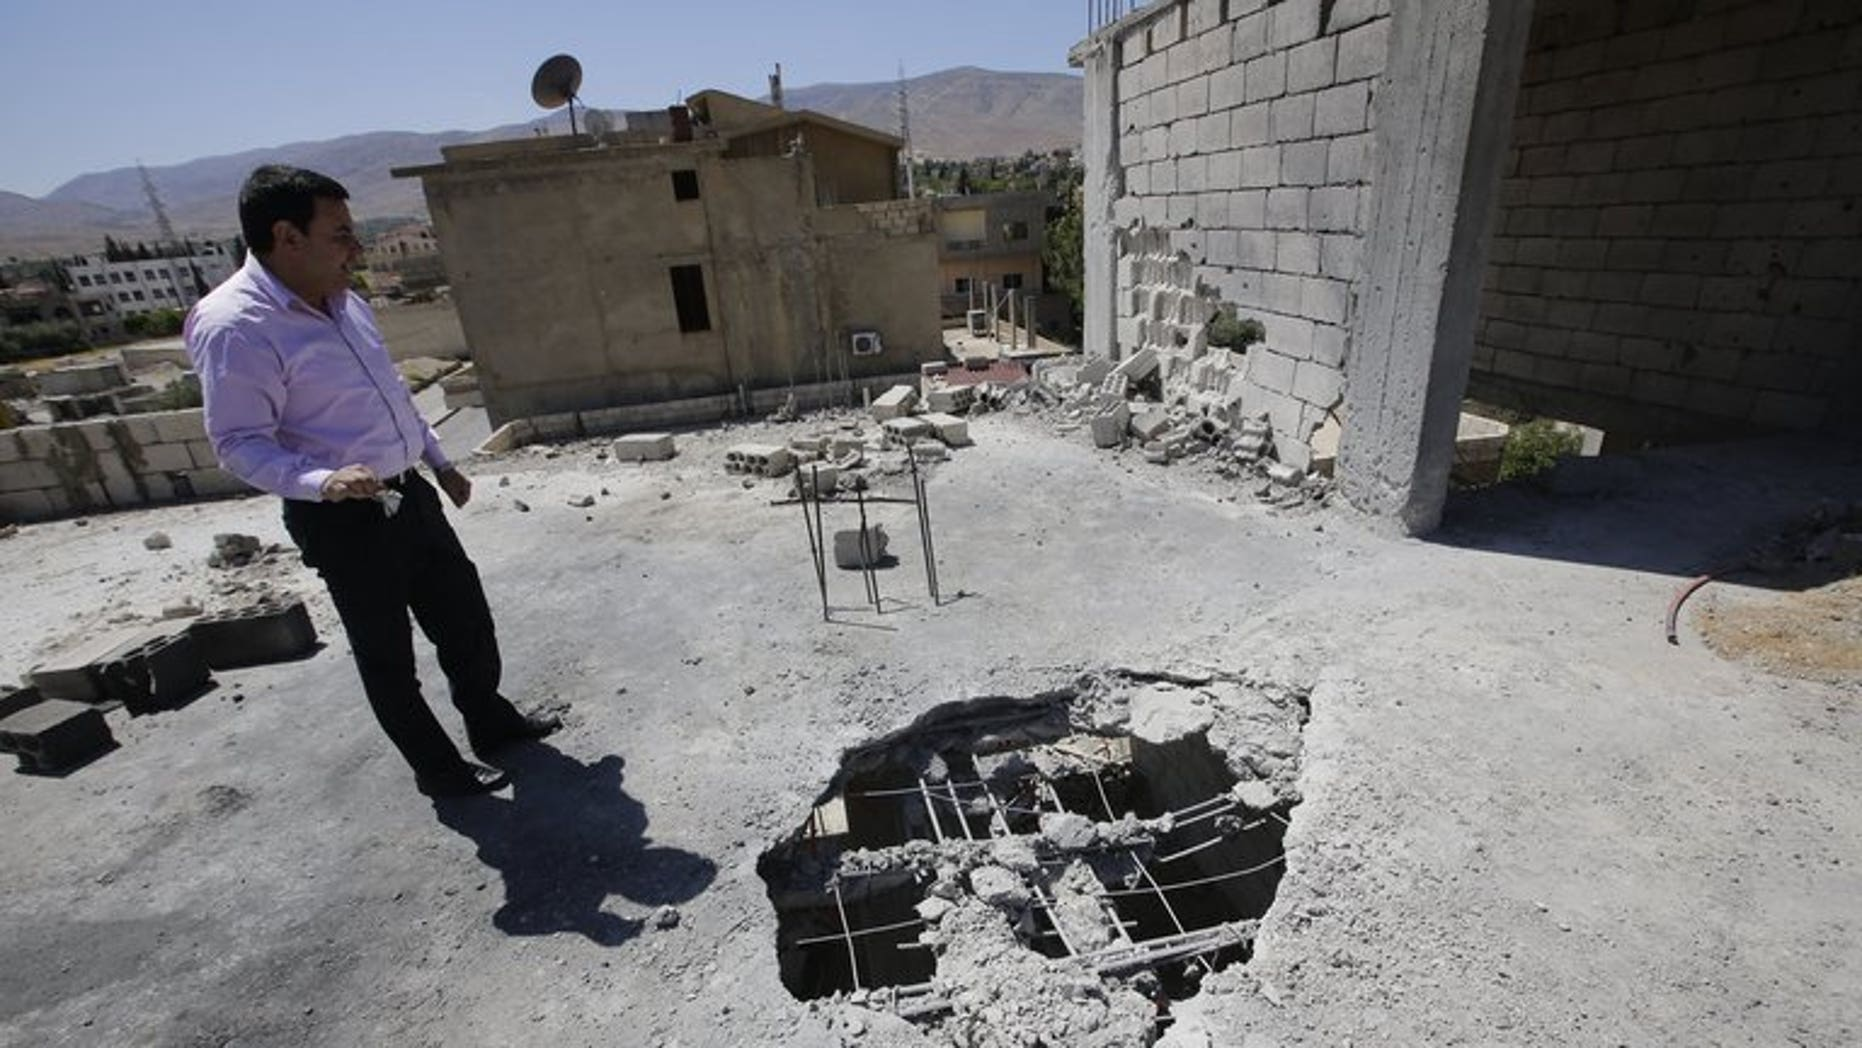 A Lebanese man inspects the damage after a rocket coming from Syria fell on his house in the town of Hermel, a few kilometres from Baalbek in the Bekaa valley, on April 26, 2013. Five rockets landed in and around the eastern Lebanese town of Hermel, a Hezbollah stronghold, on Sunday, a security source told AFP on condition of anonymity.